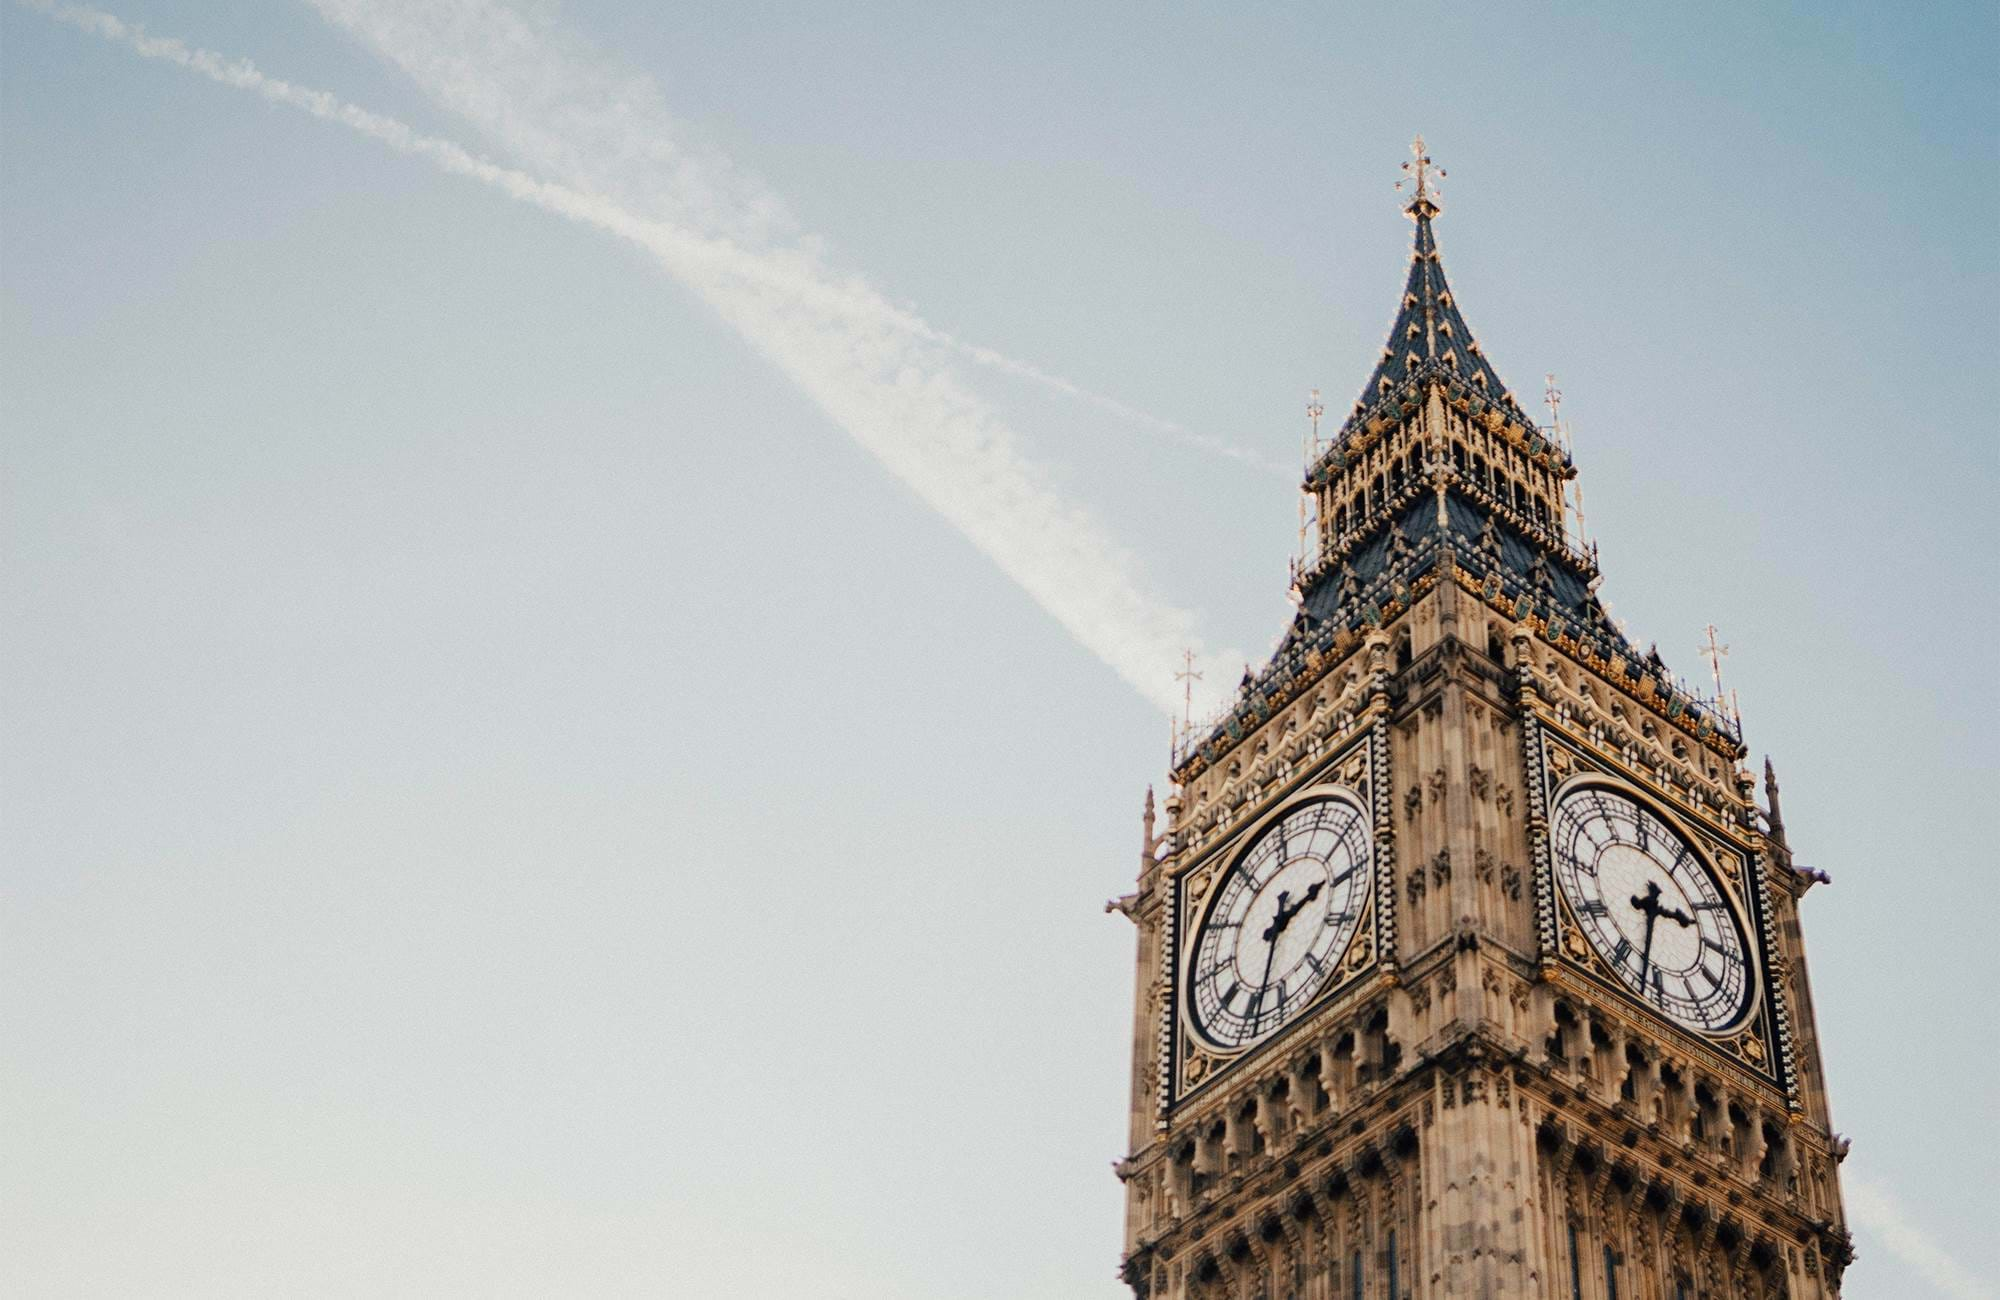 studer i london och ha big ben som granne